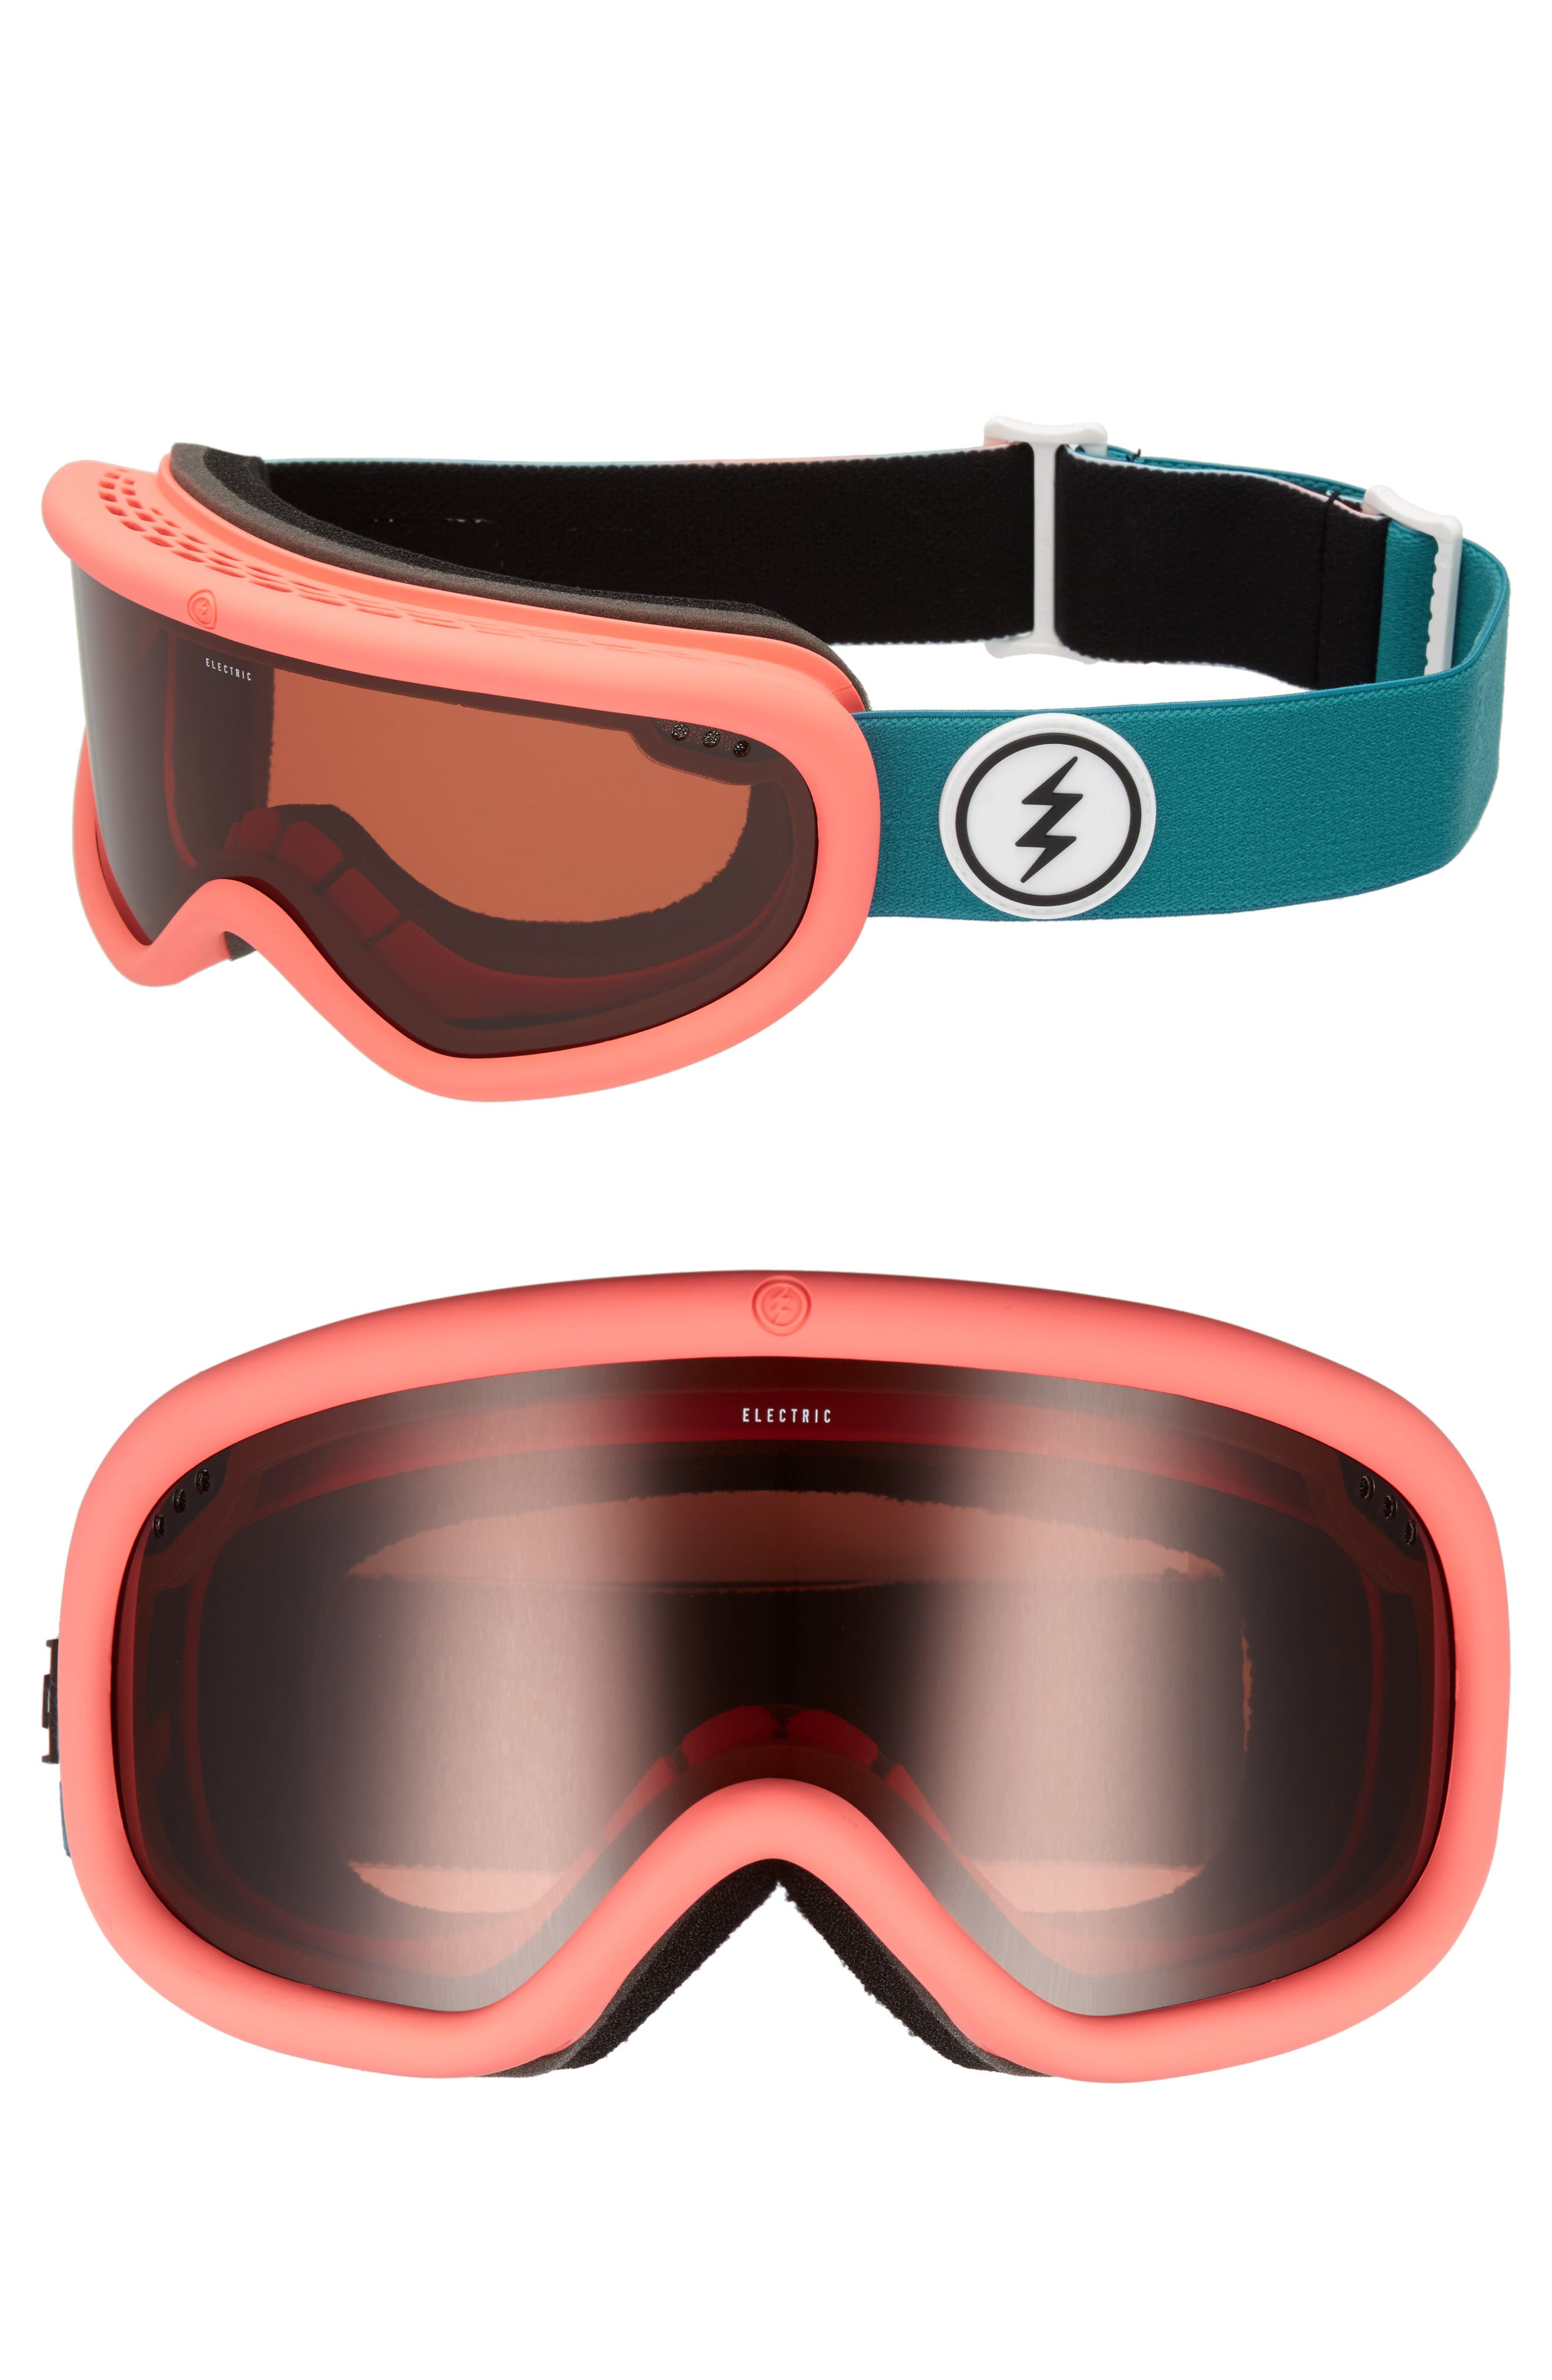 Main Image - ELECTRIC Charger Snow Goggles